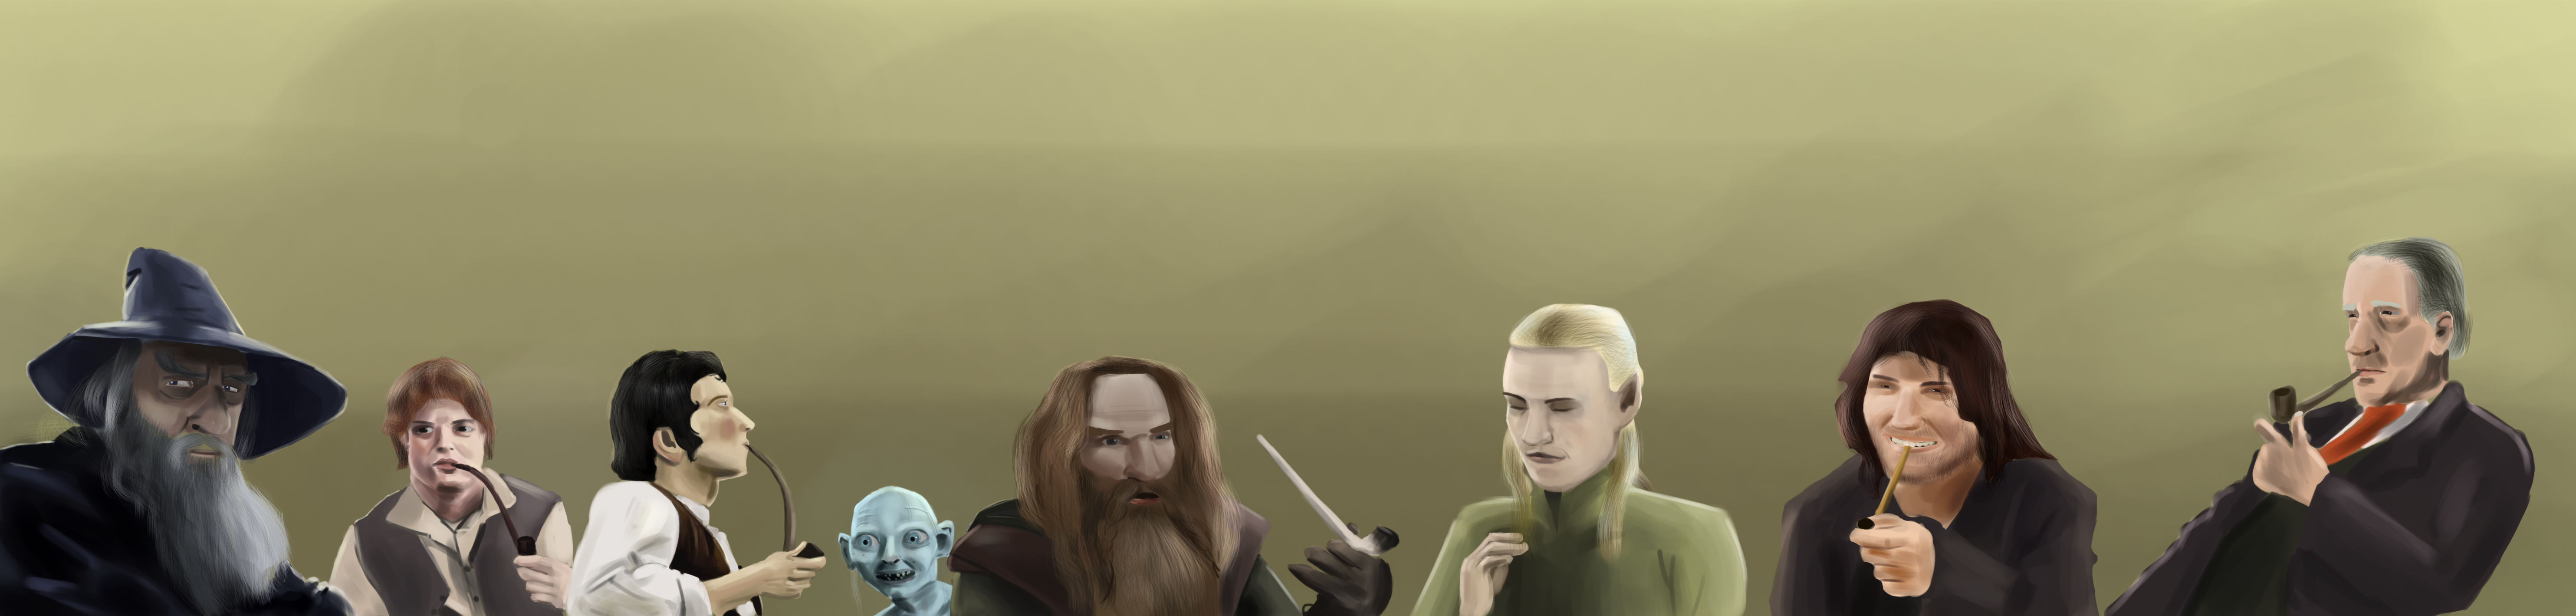 LOTR party with J.R.R. Tolkien